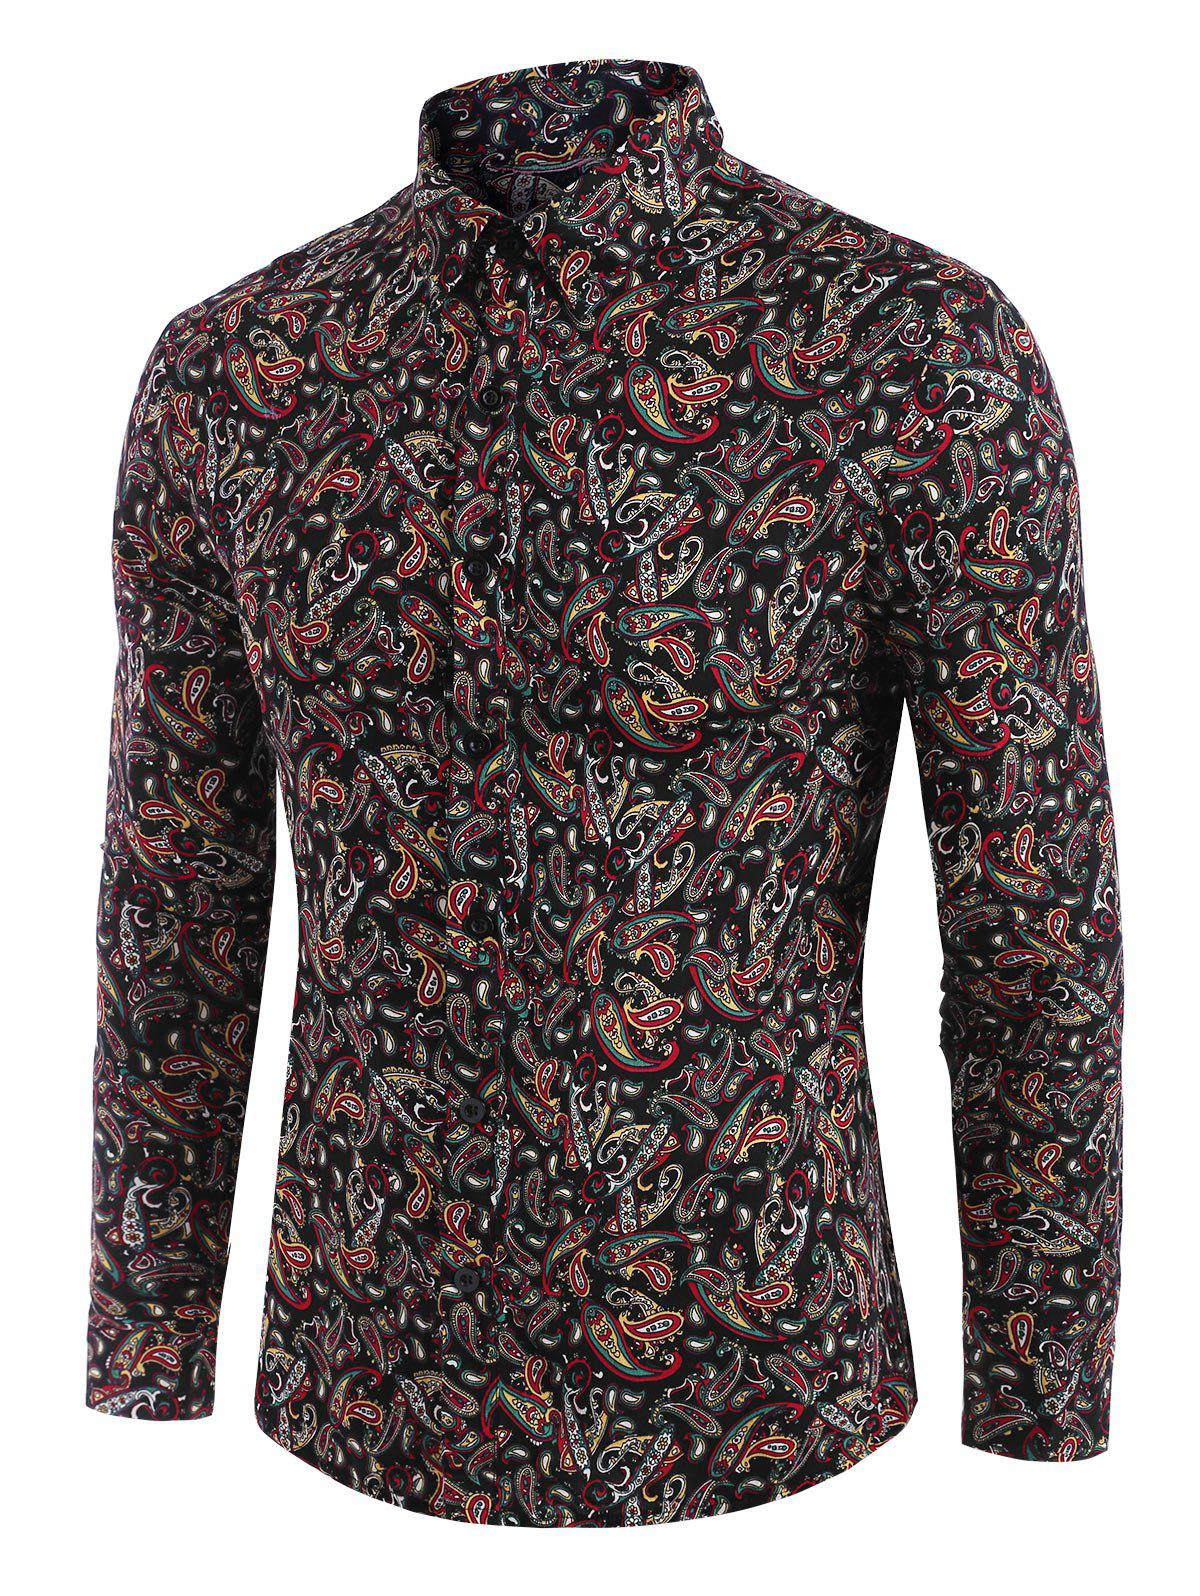 Trendy Paisley Allover Print Button Down Shirt